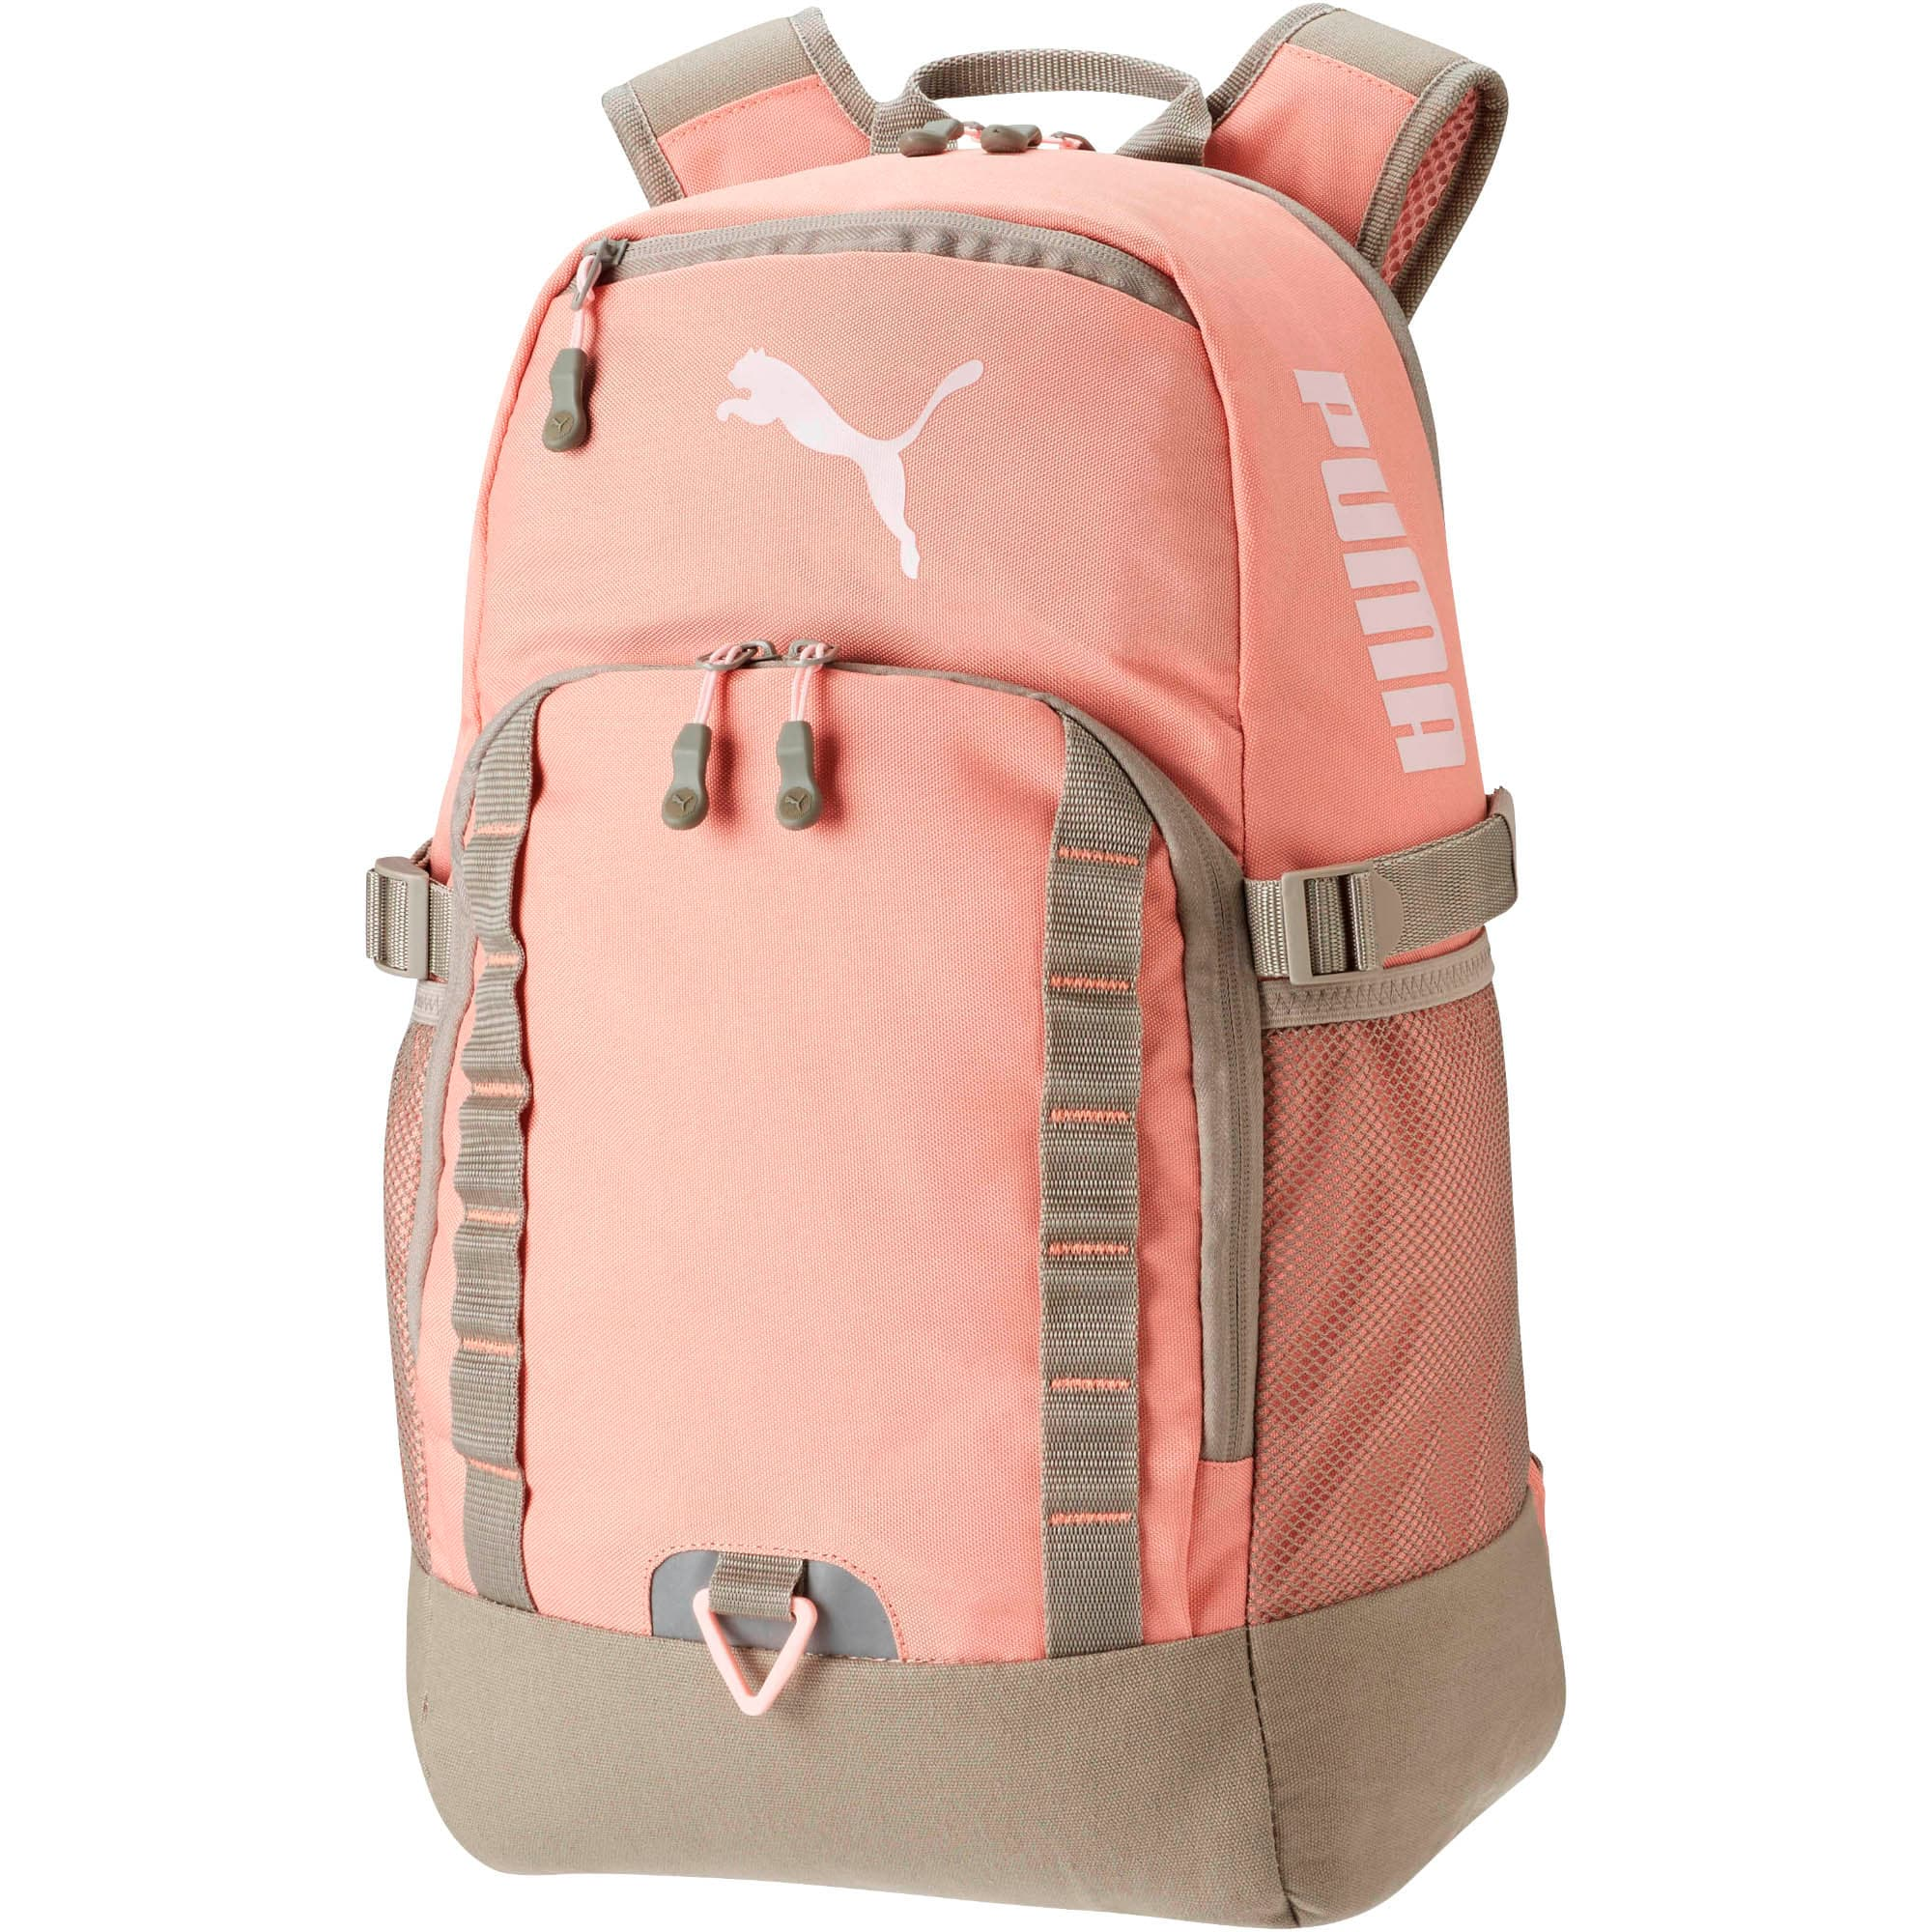 Miniatura 1 de Mochila EVERCAT Fraction, Peach Beige, mediano